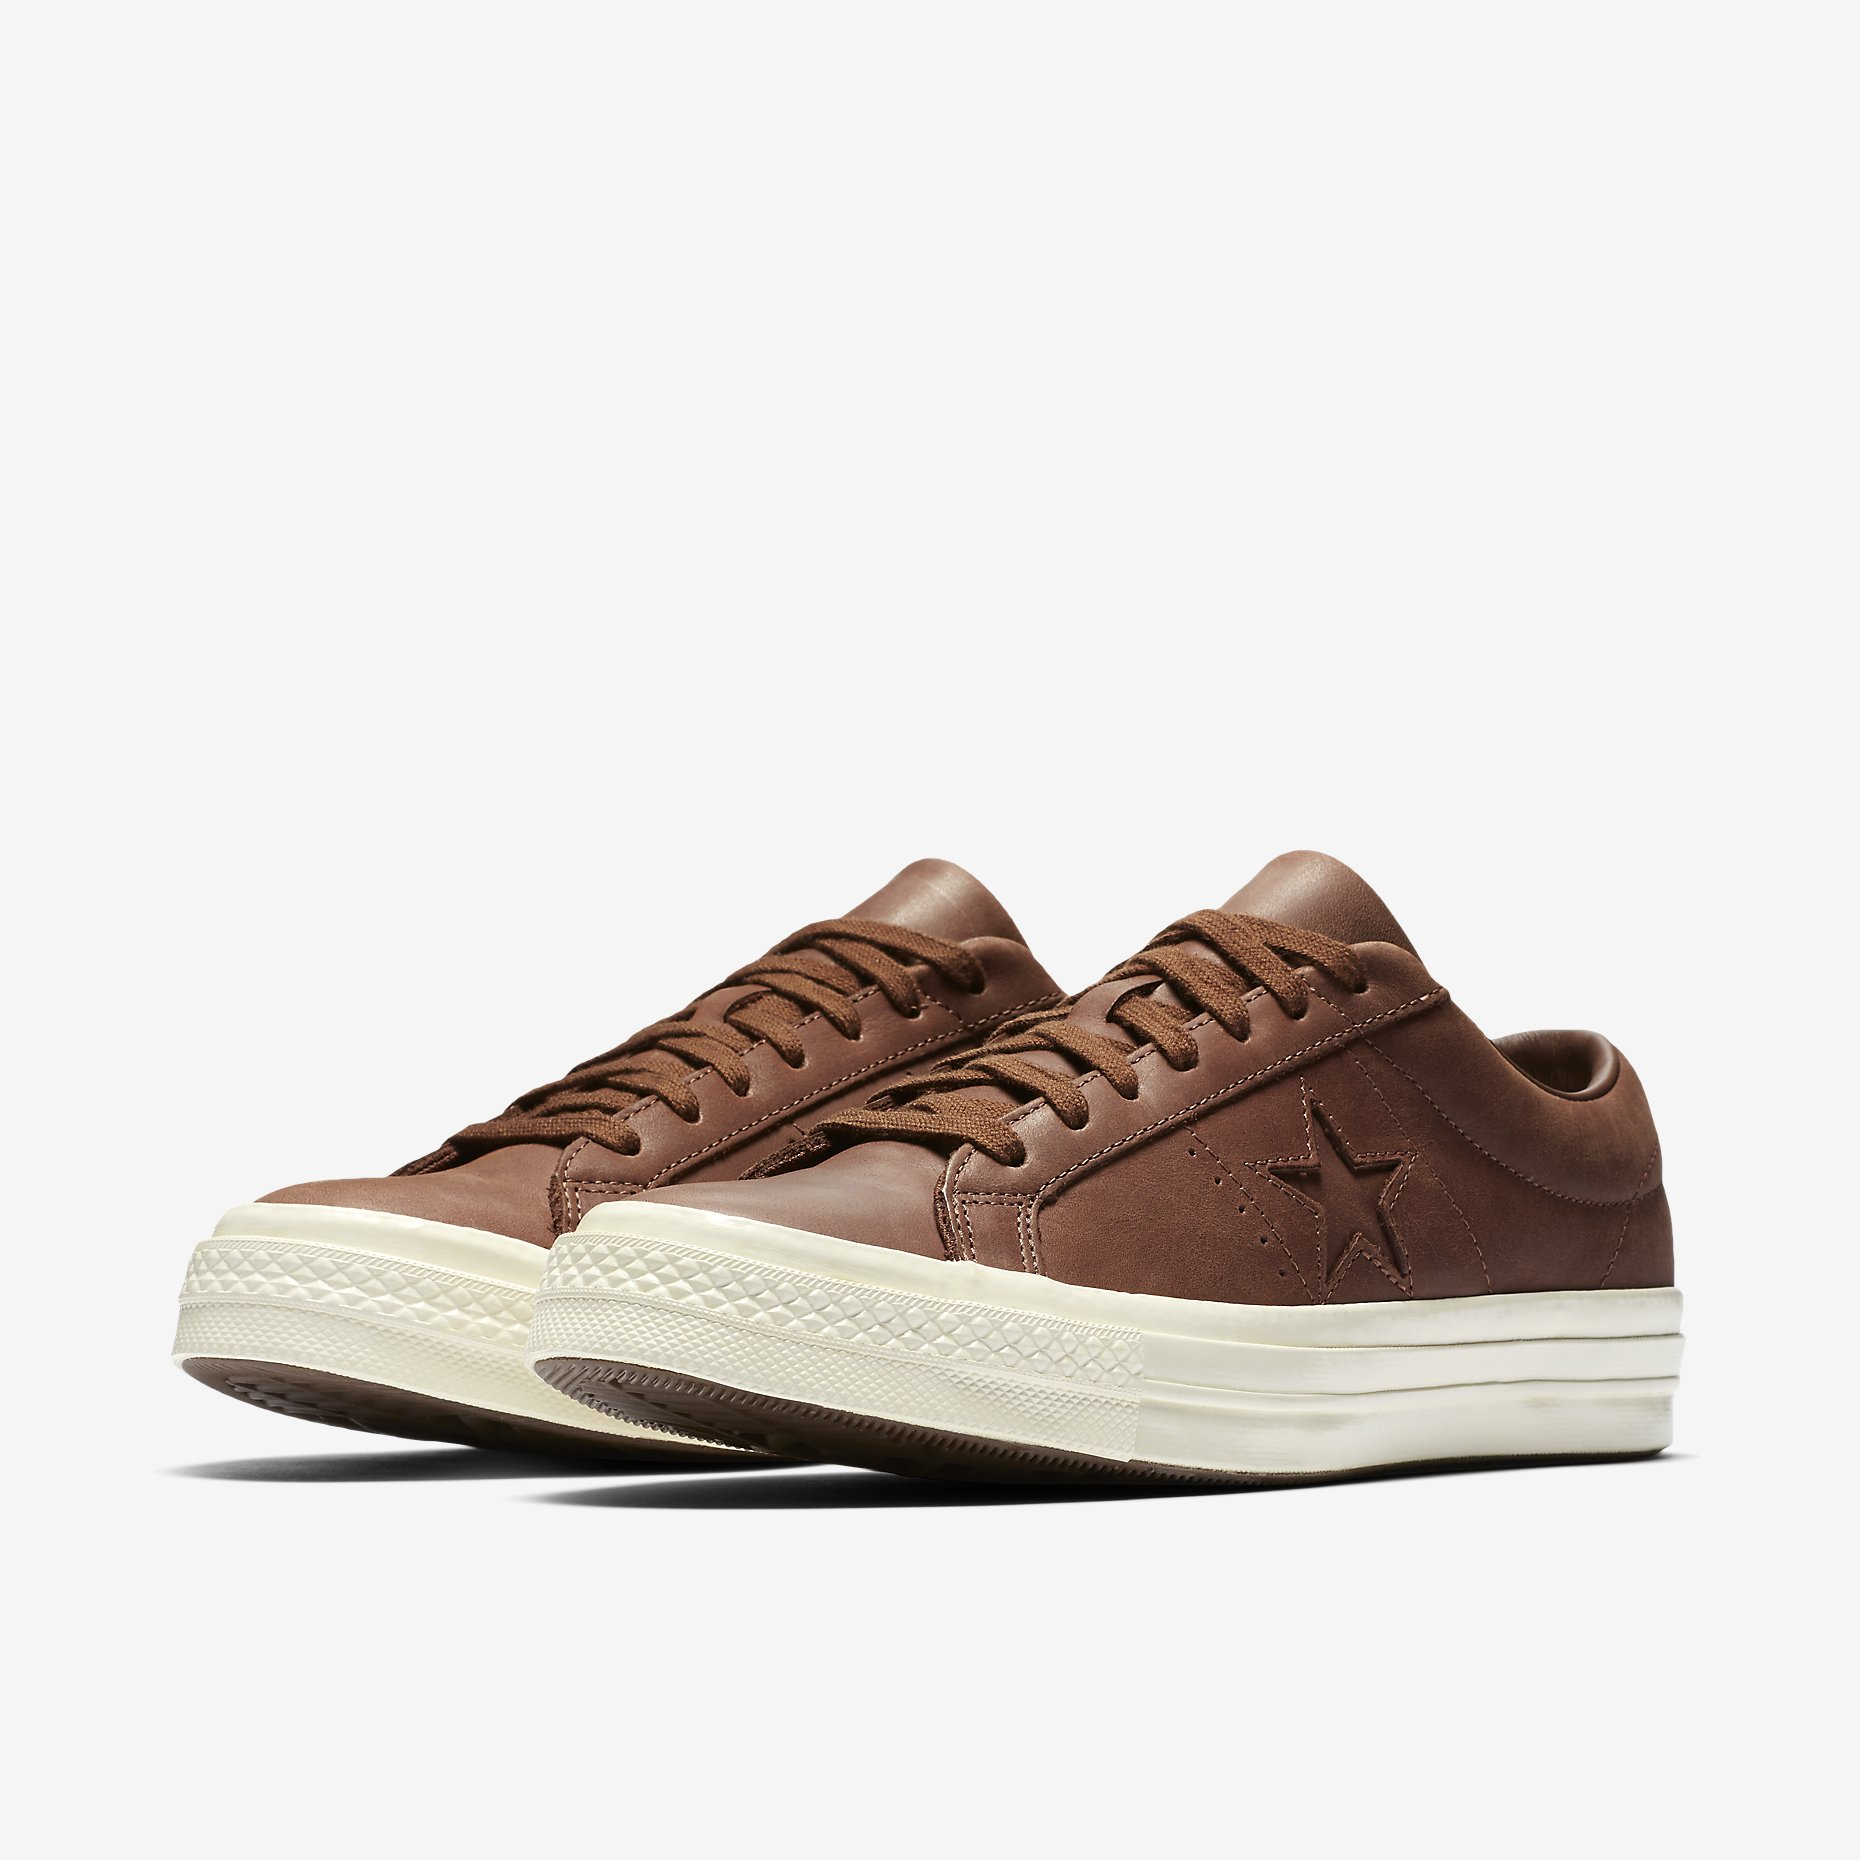 Very Goods | Converse One Star Premium Leather Low Top Men's